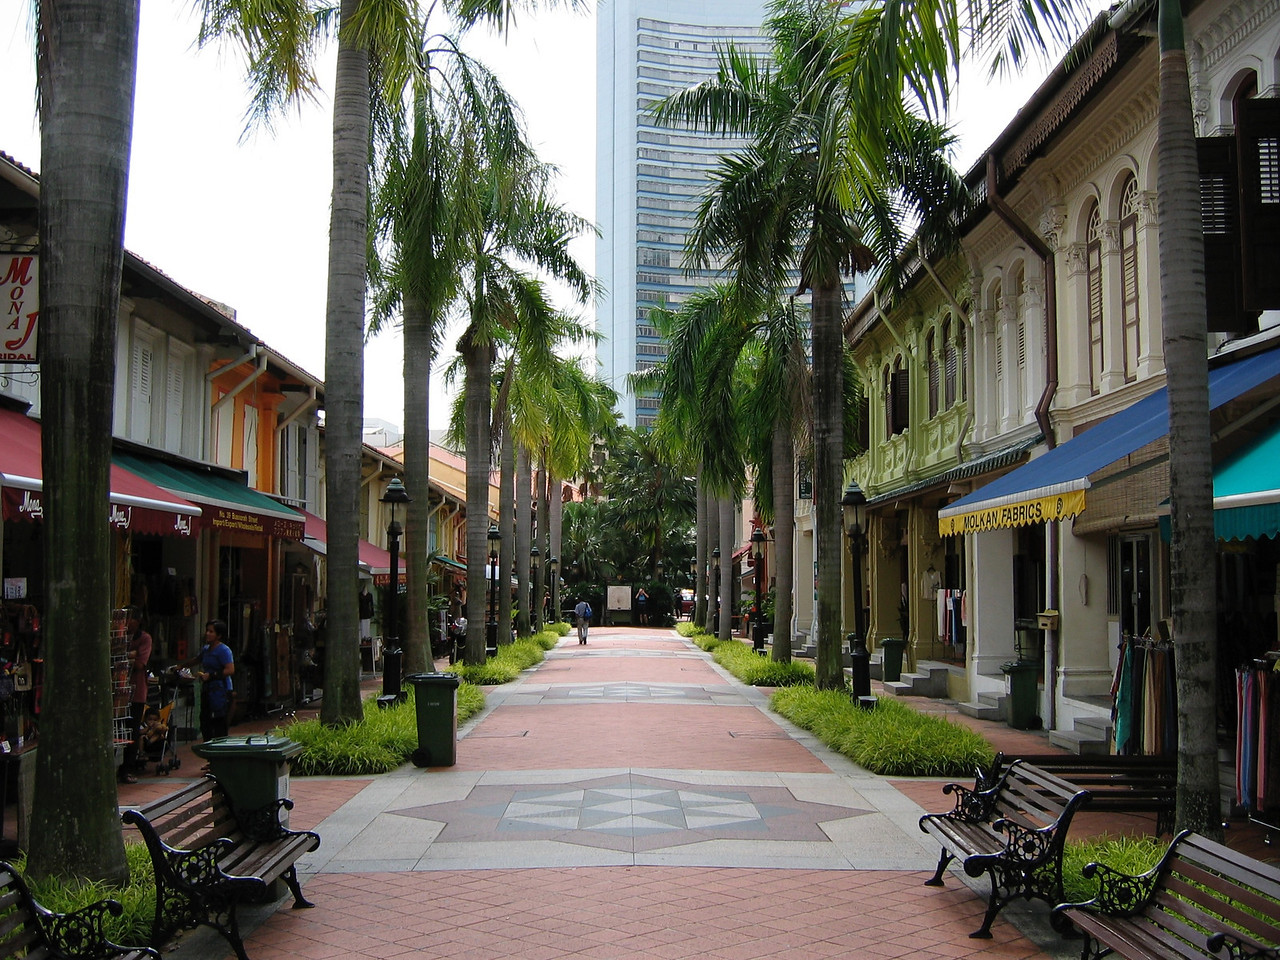 Arab Street is another shopping district right outside the Sultan Mosque.